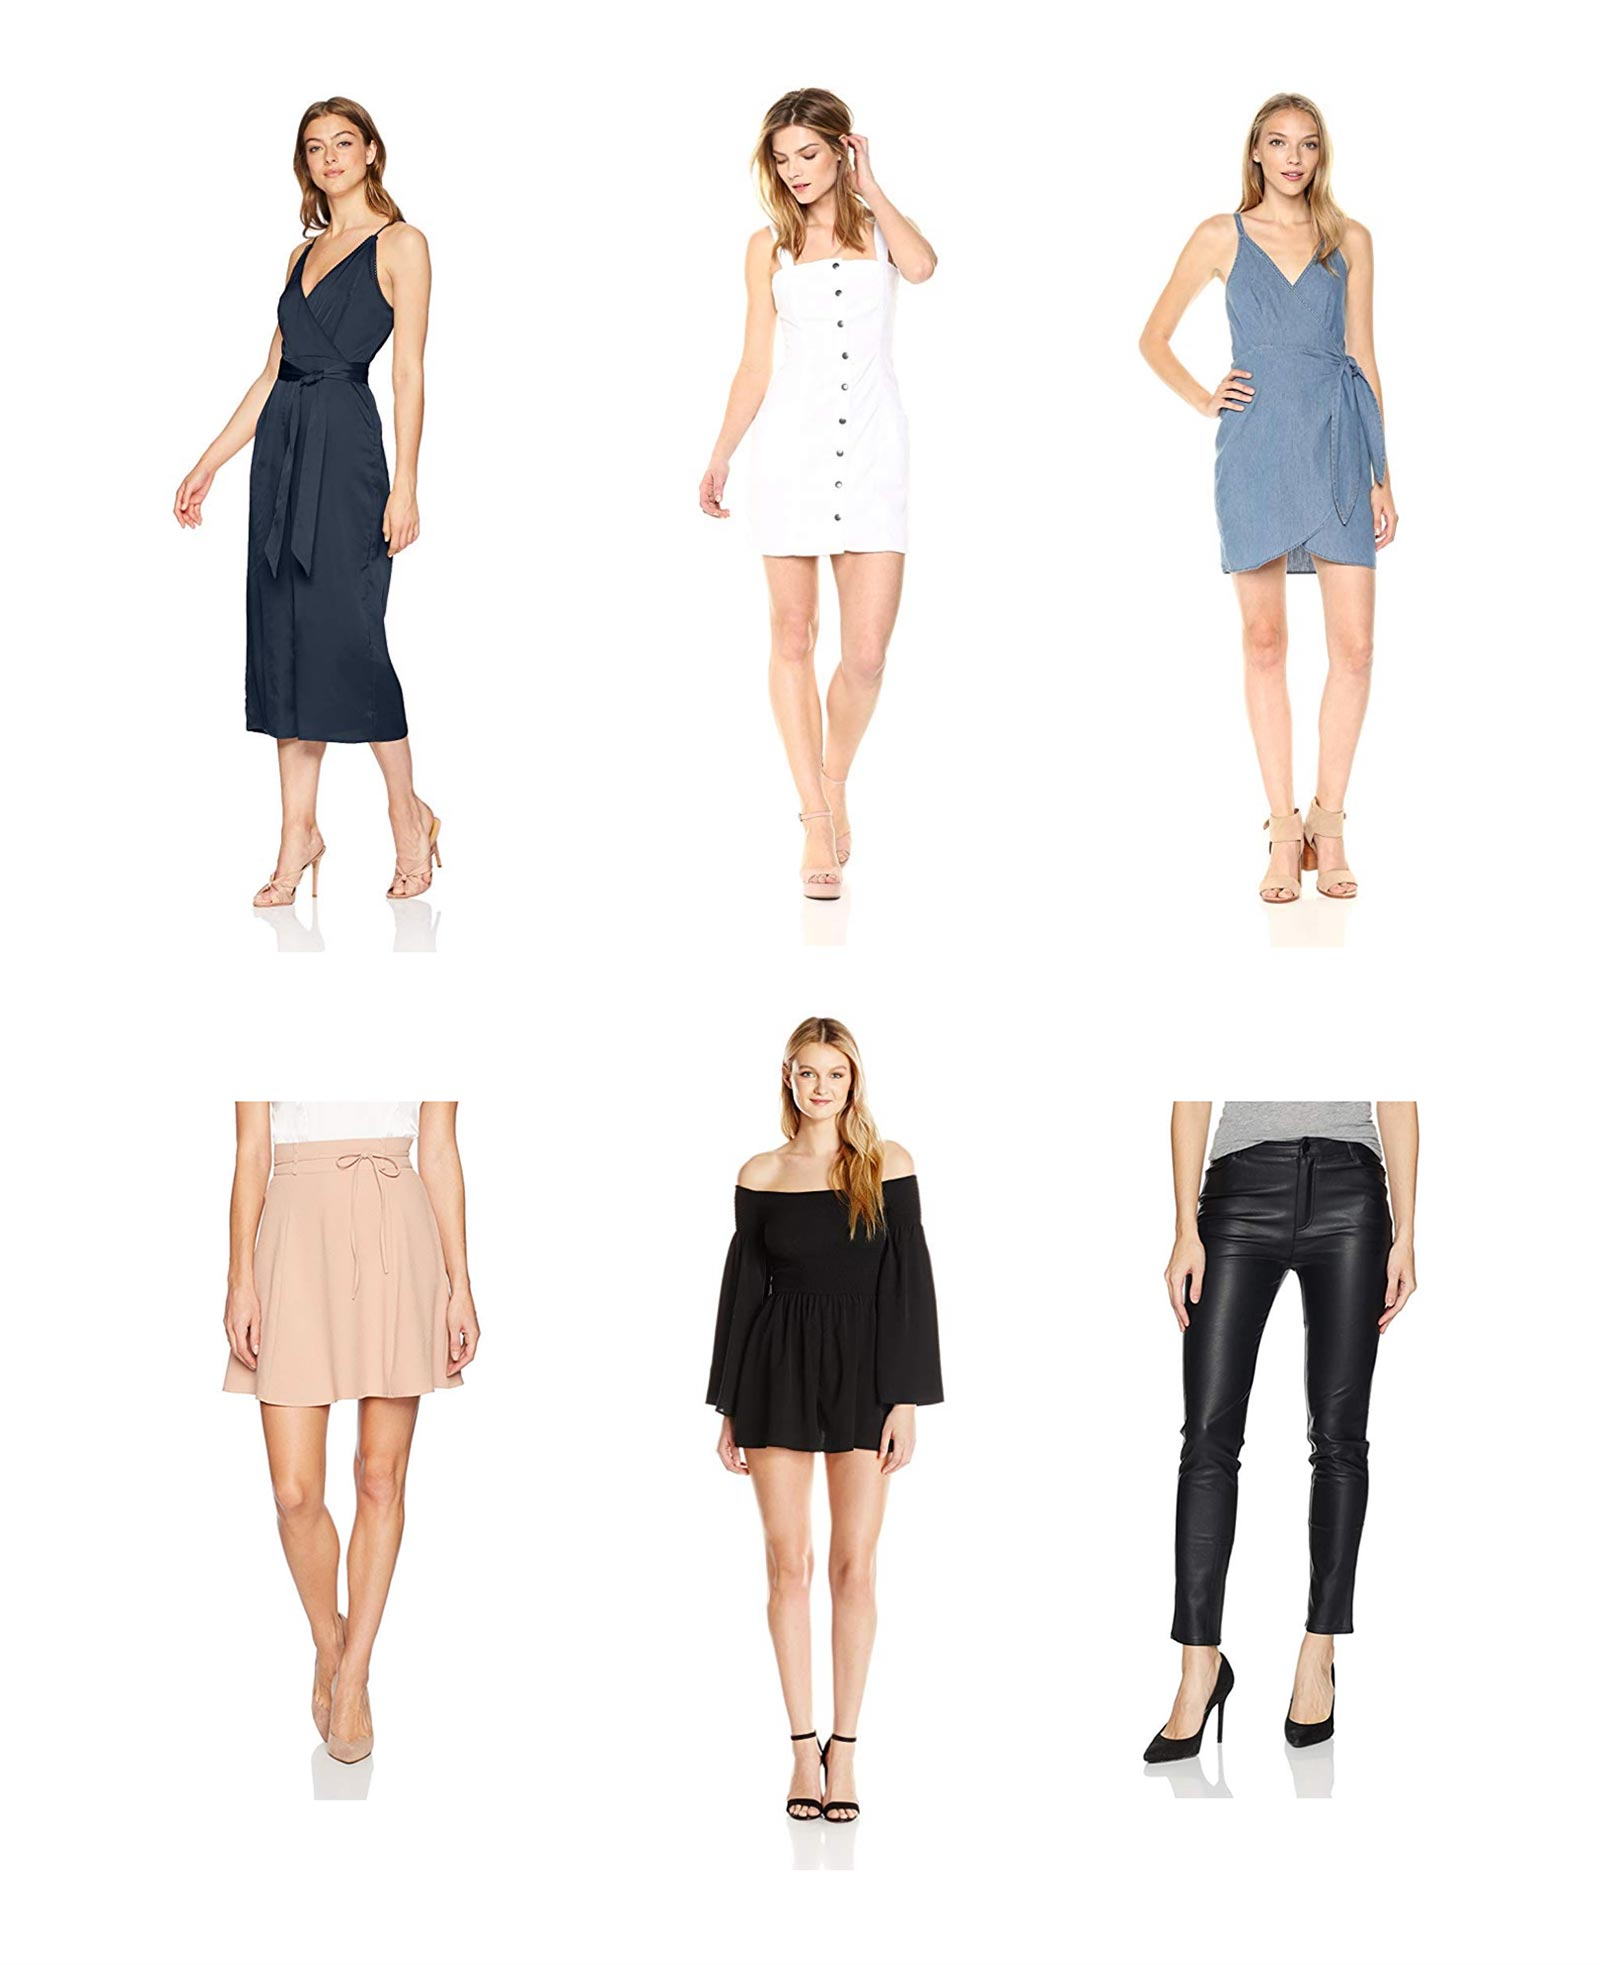 Amazon Fashion 6 Chic Affordable Clothing Brands On Amazon Jessoshii